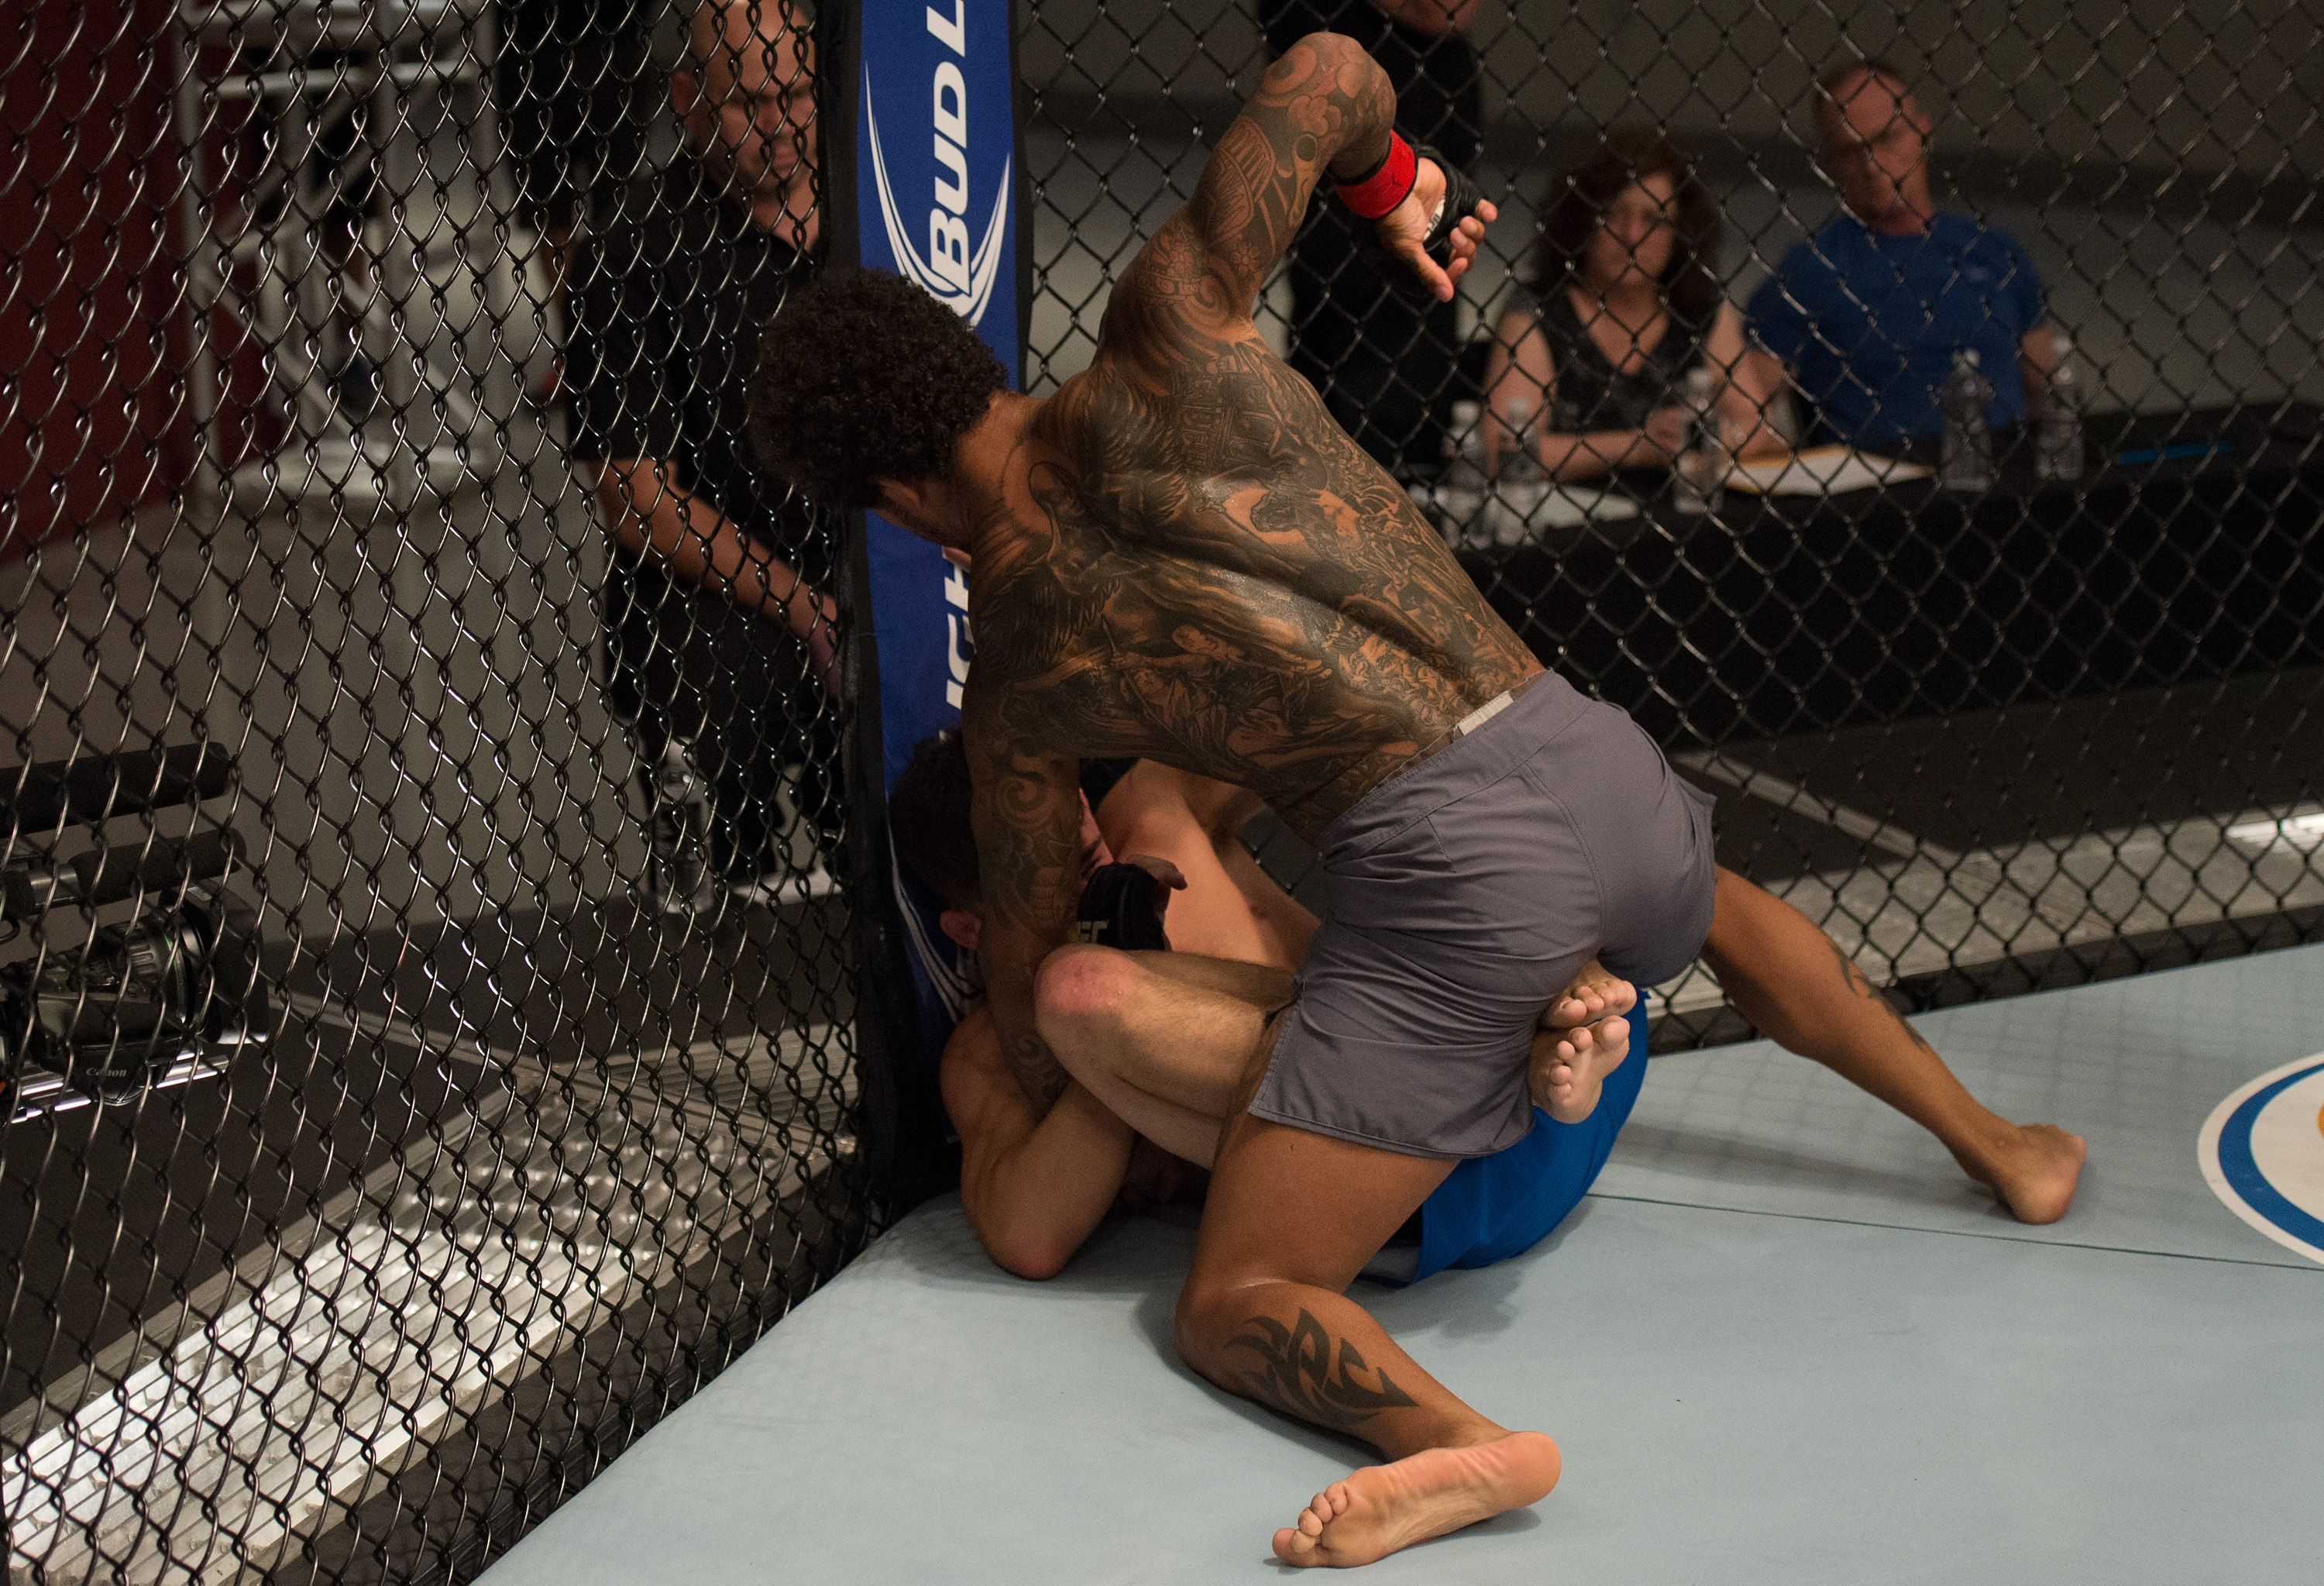 Saul Rogers (top) punches Billy Quarantillo during the filming of The Ultimate Fighter: Team McGregor vs Team Faber at the UFC TUF Gym on August 3, 2015 in Las Vegas, Nevada. (Photo by Brandon Magnus/Zuffa LLC)